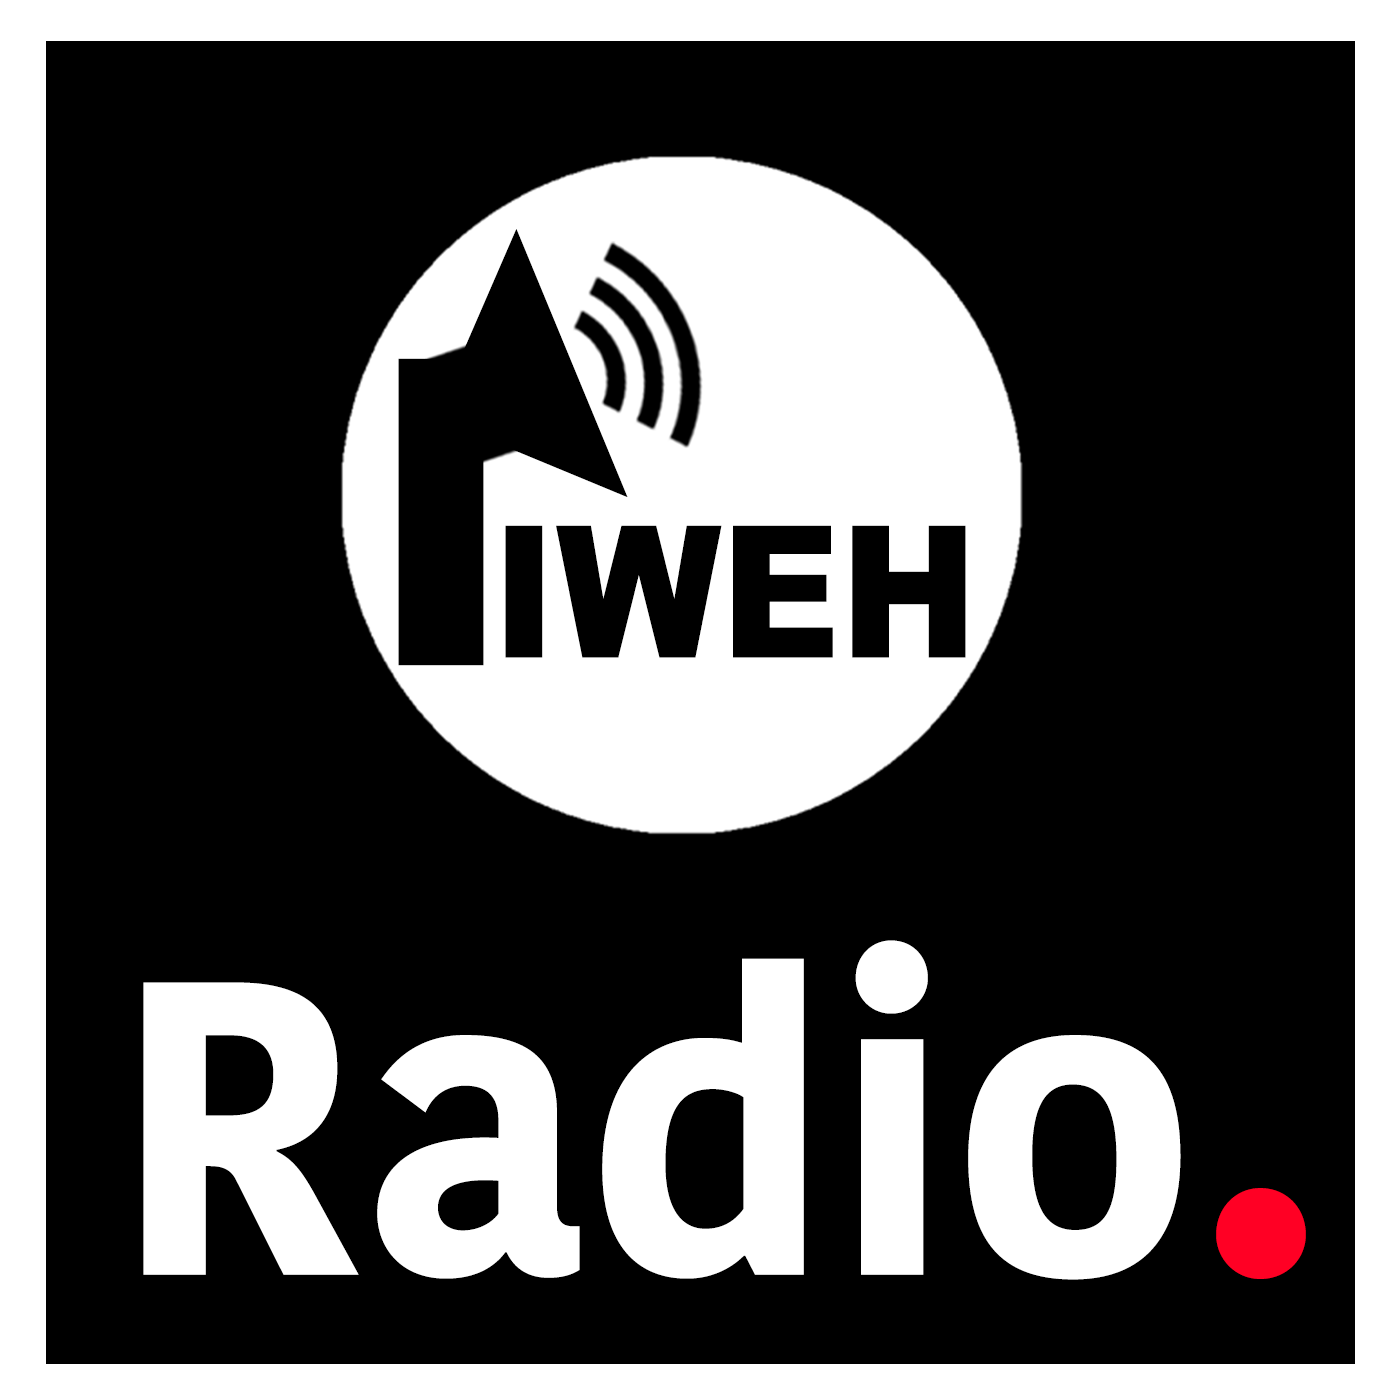 FiWEH Radio - Today's Best Reggae Station